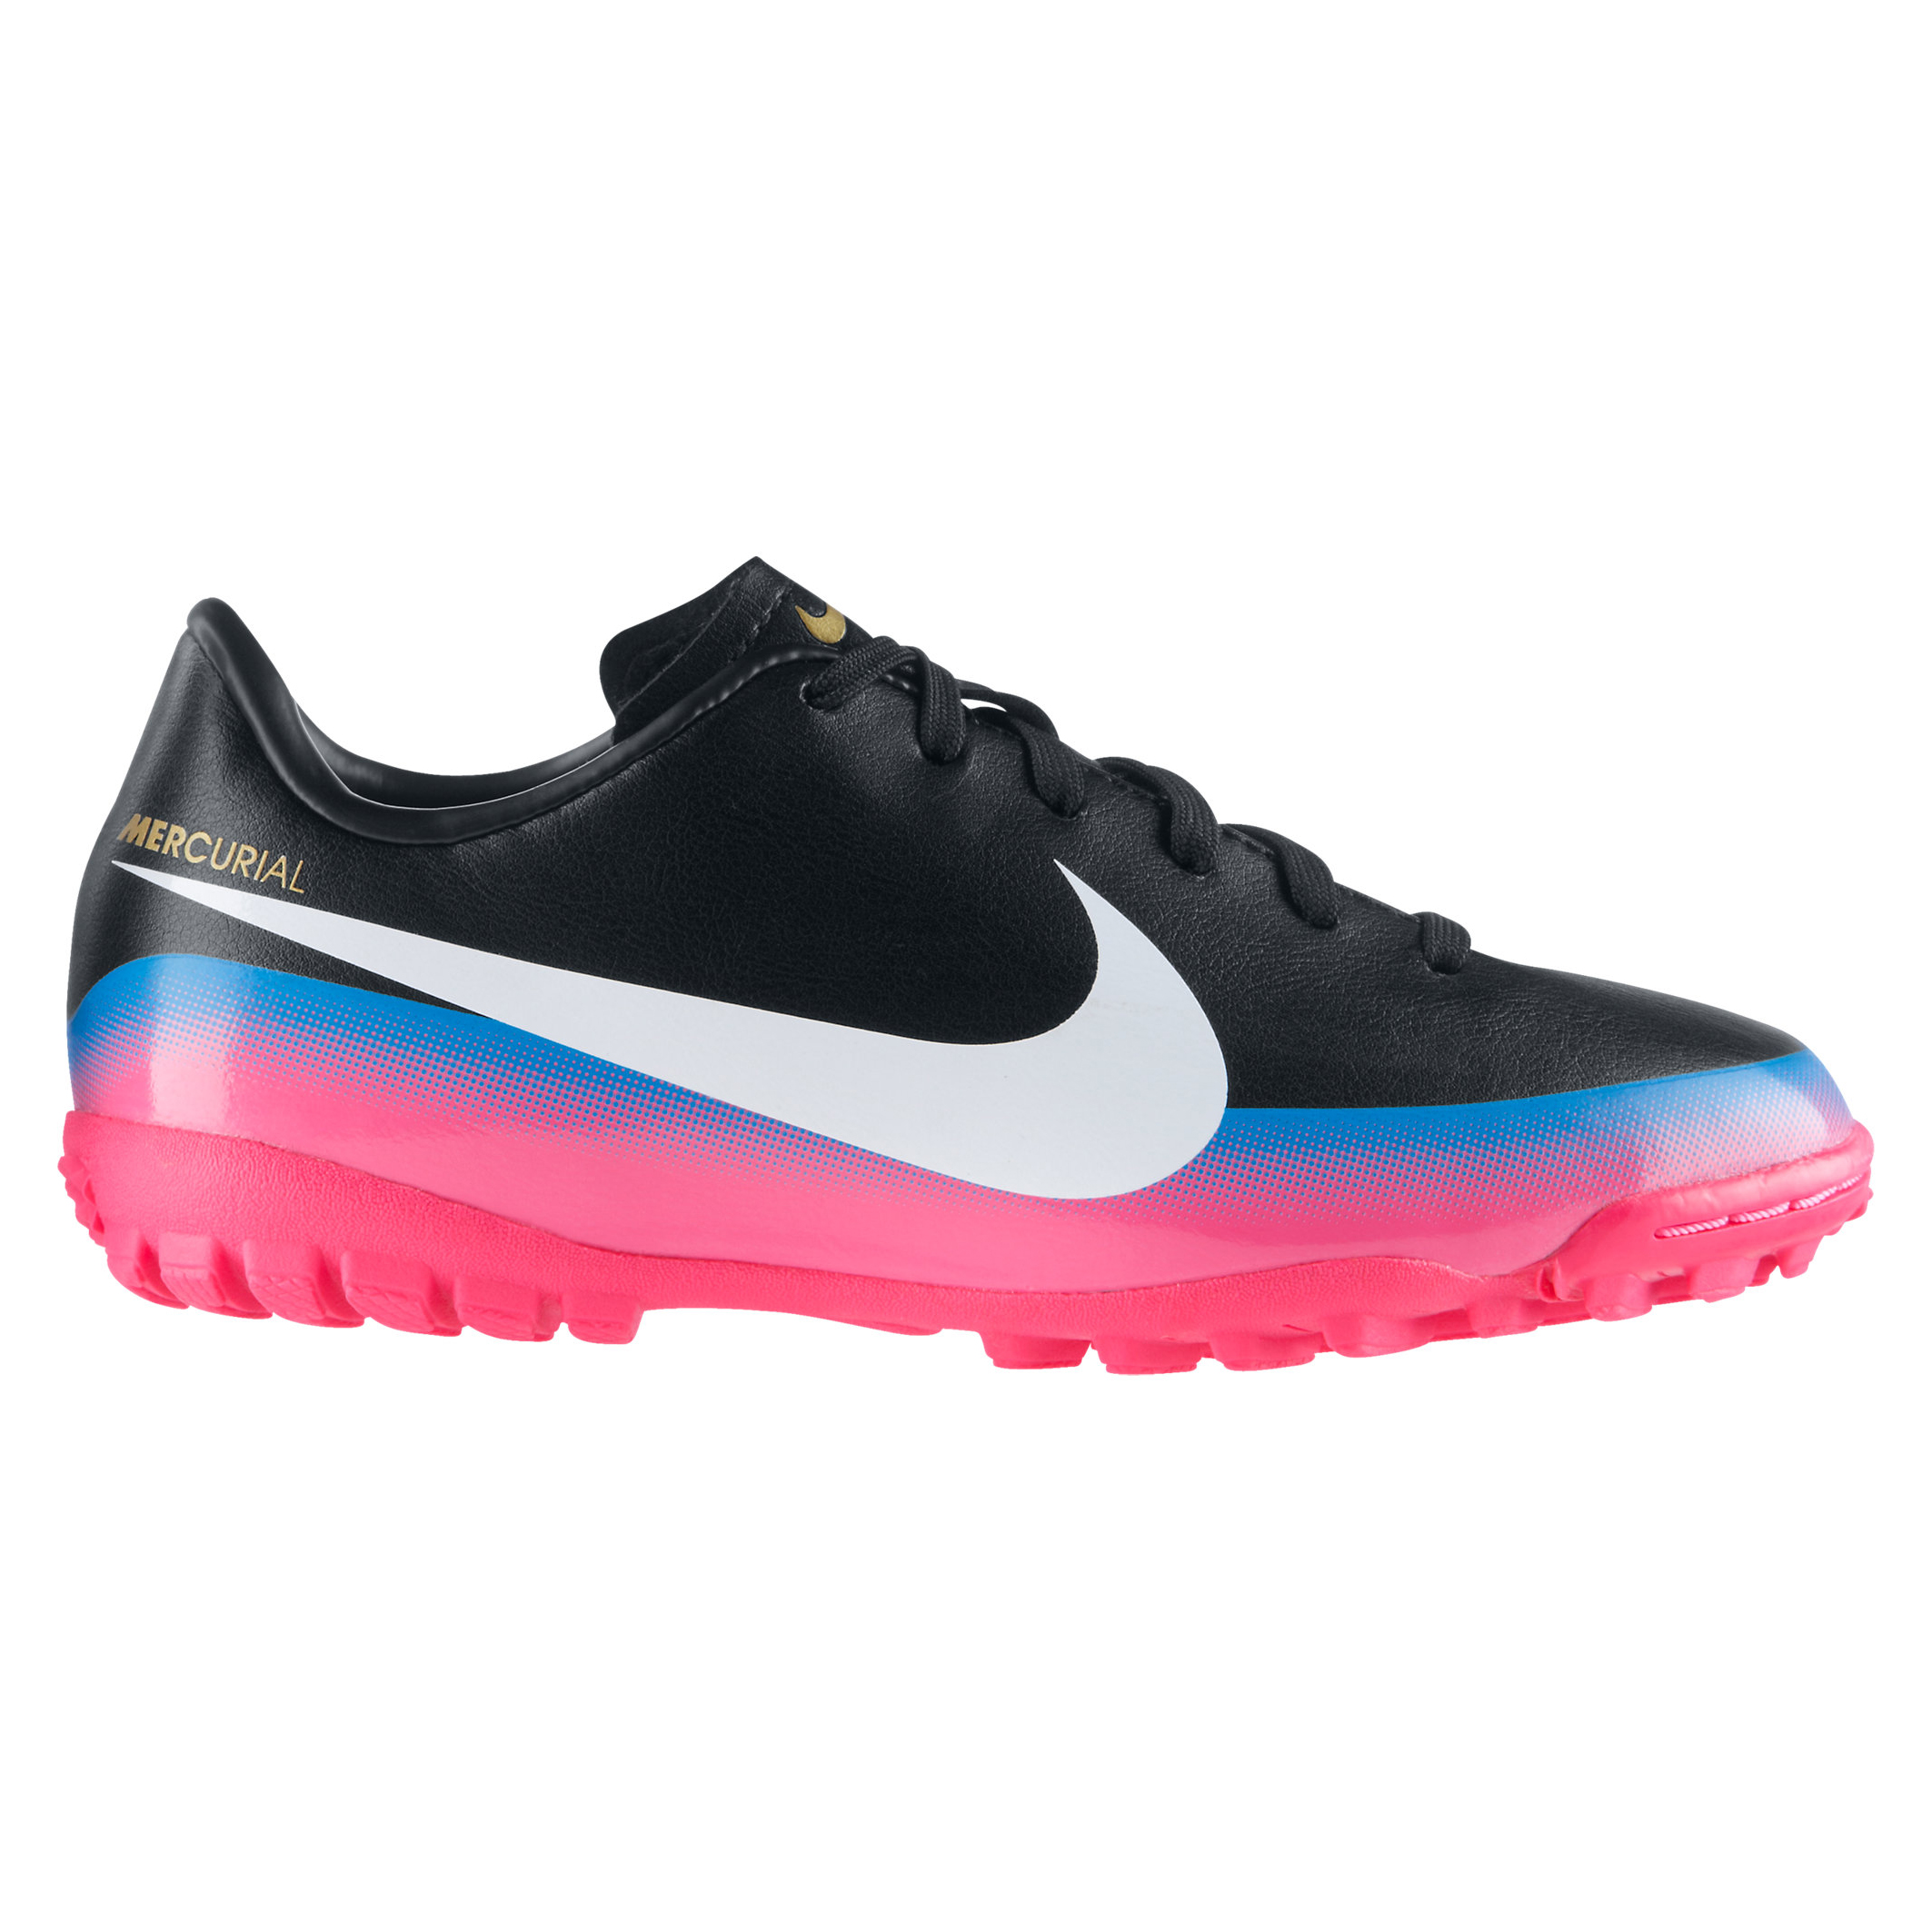 Nike Mercurial Victory III CR7 Astro Turf Trainers - Black/White/Blue Glow/Pink Flash - Kids